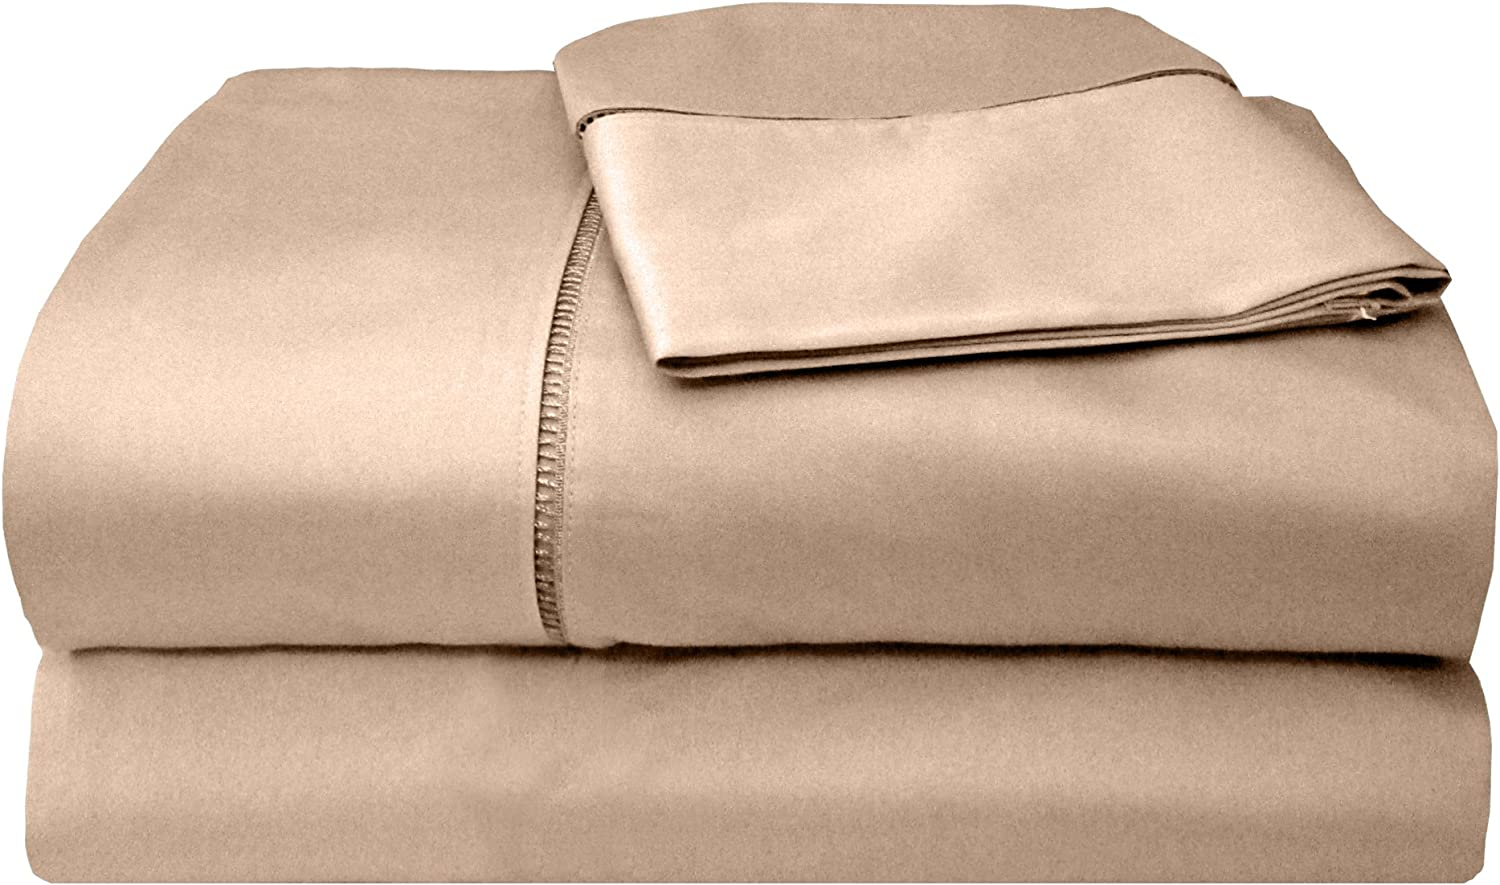 Sage Inc Veratex Legacy Collection 300 Thread Count 100/% Egyptian Cotton Sateen Bed Sheet Set With Elegant Stitch Hem Design Full Size 513954